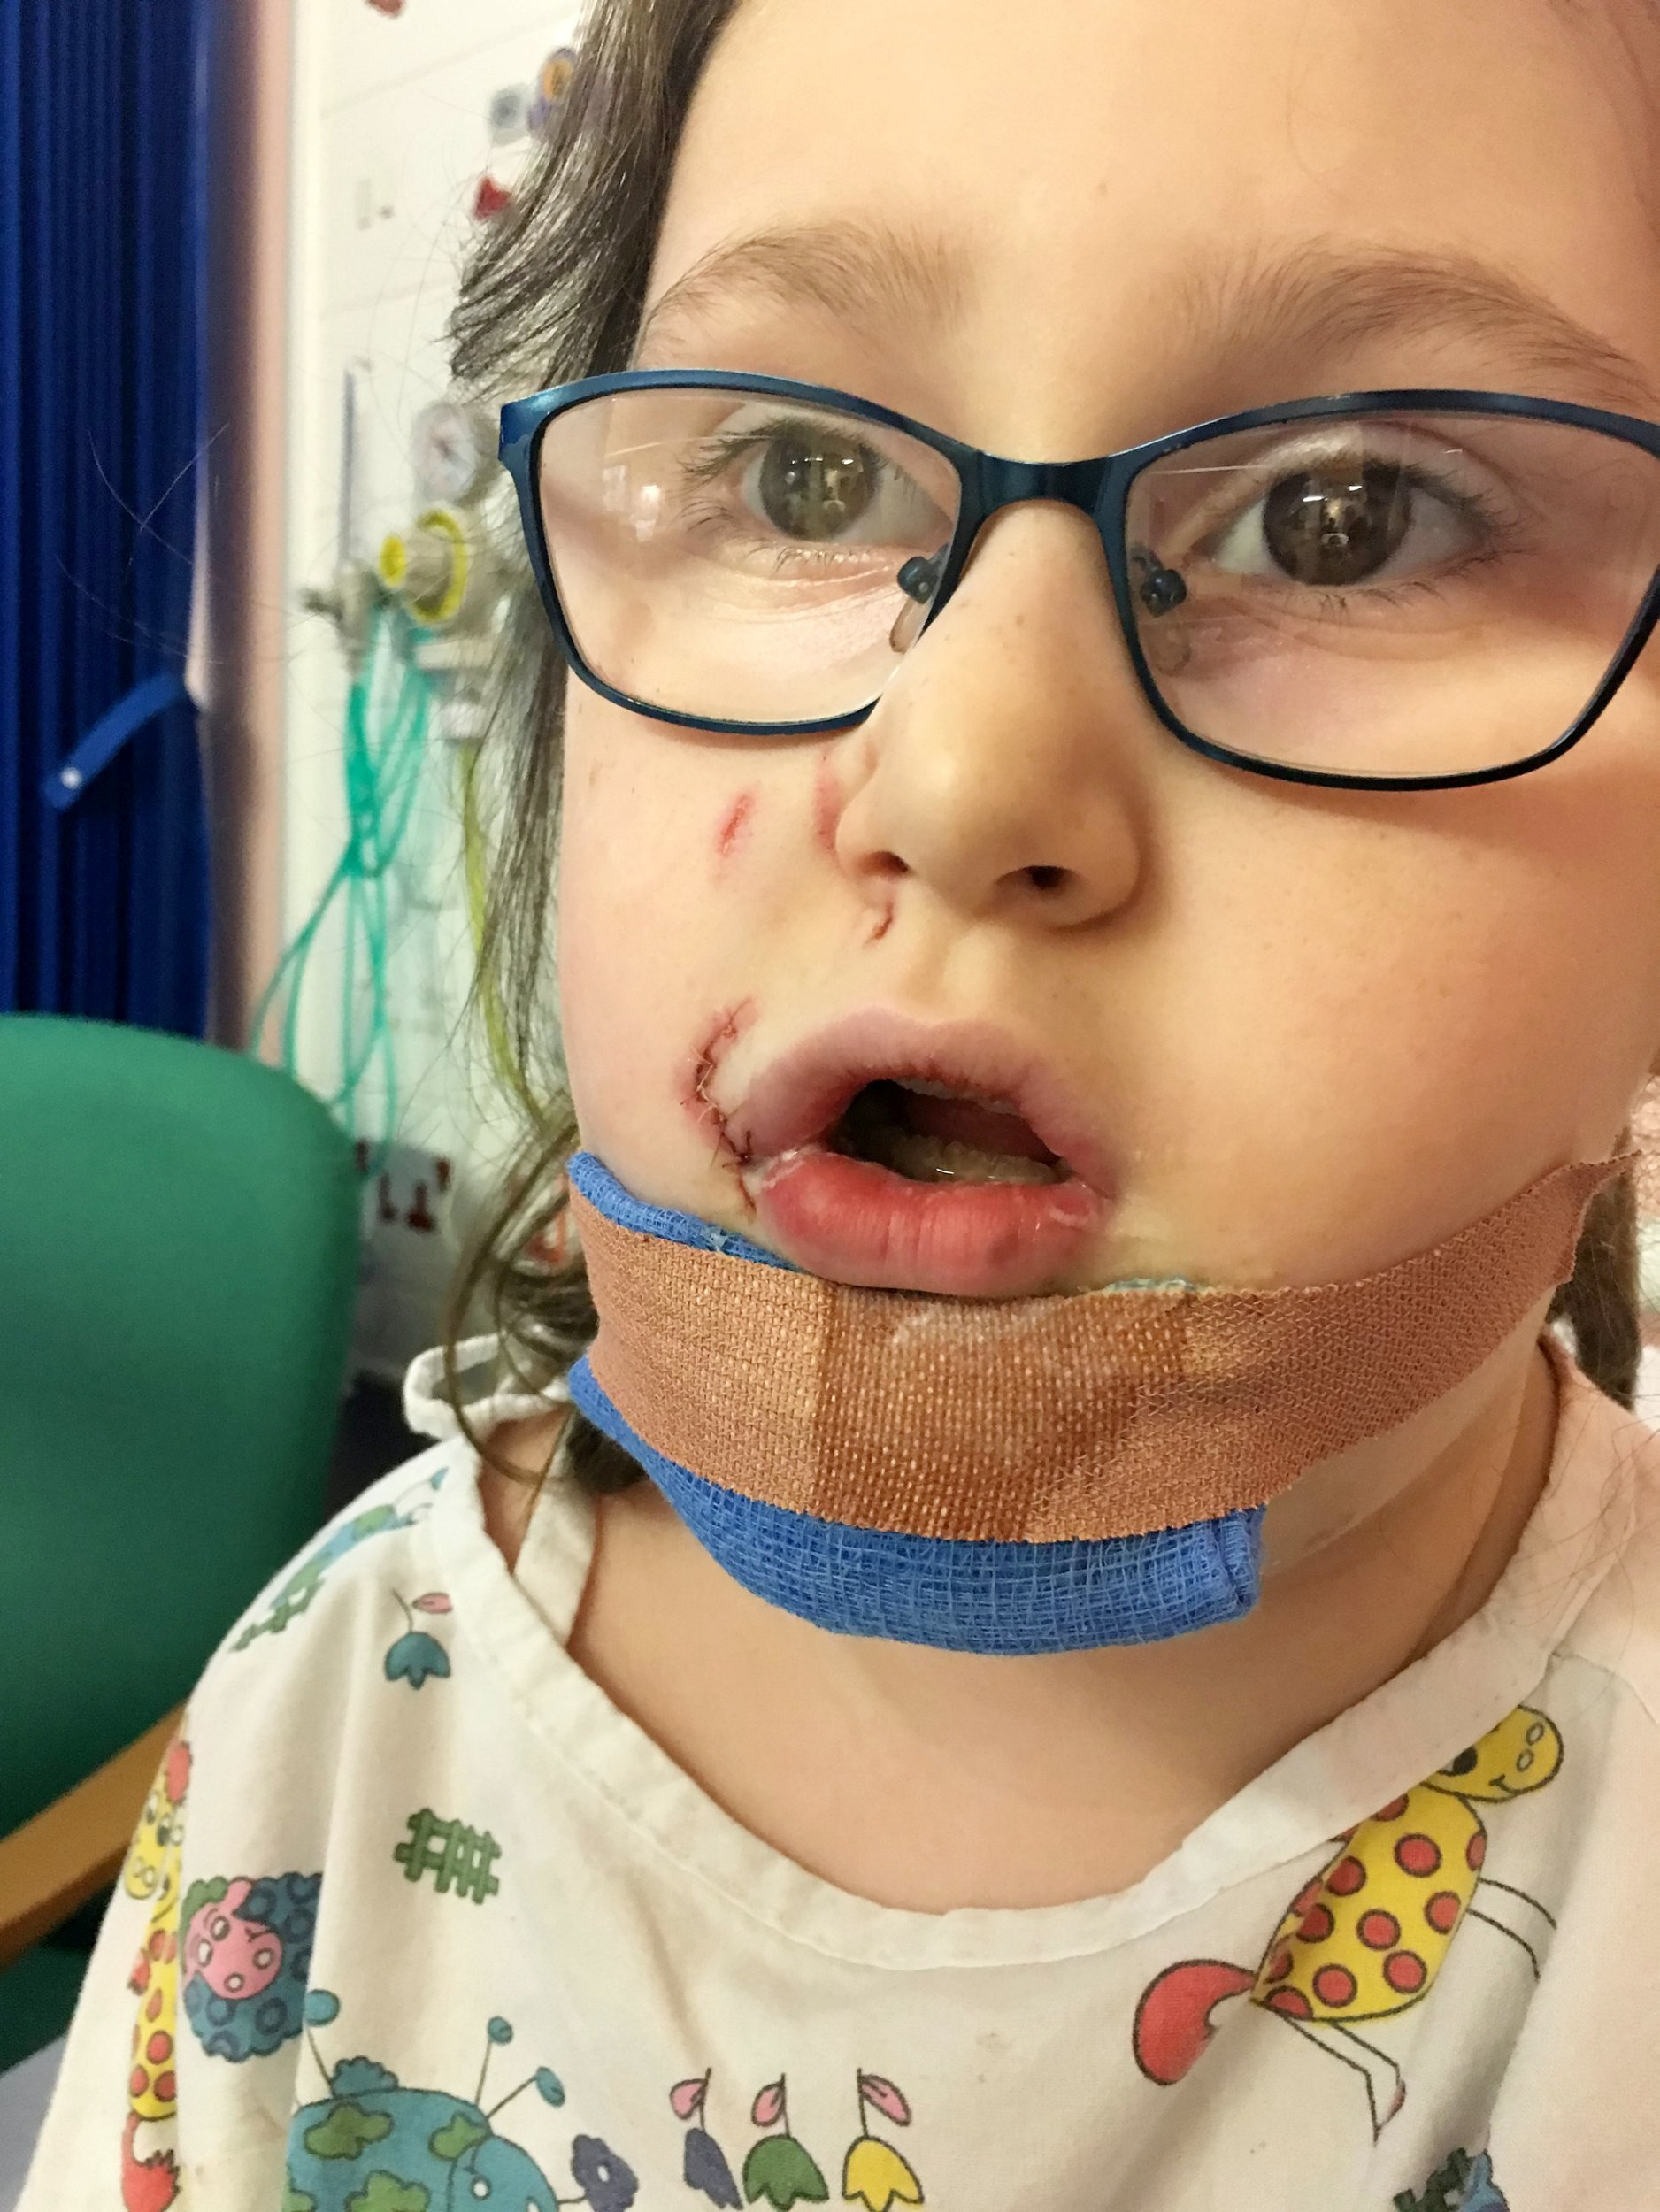 """Kiera Woodhouse, 7 of Nottingham after reconstructive surgery at Lincoln Hospital, 2018. An autistic schoolgirl has been left """"mentally scarred"""" after she was left with horrific facial injuries from a vicious dog attack. See SWNS story SWMDmaul. Kiera Young, 7, had her lip ripped off after stoking a white and black Akita outside the Witham Tavern, Boston, on February 27 just after 2pm. Her grandmother Sharon Young, 57, had taken her to the pub for her sister Debbie Hayes 60th Birthday. The mum-of-two, from Nottingham walked, whilst Kiera was driven down by Debbie. The 57-year-old said she heard her granddaughter screaming across the river and dashed to the scene. She saw Kiera bleeding from her mouth and rushed her to Pilgrim Hospital, Boston, where her wounds were cleaned. The youngster, spent nearly three hours in surgery at Lincolnshire Hospital the next day to repair her facial injuries. Kiera was diagnosed with autism at the age of three and struggles to eat and keeps her distance when ever she see a dog in the street since the attack. Sharon, who been Kiera's carer since she was 11 months old, said she has still not received an apology from the dog's owners."""